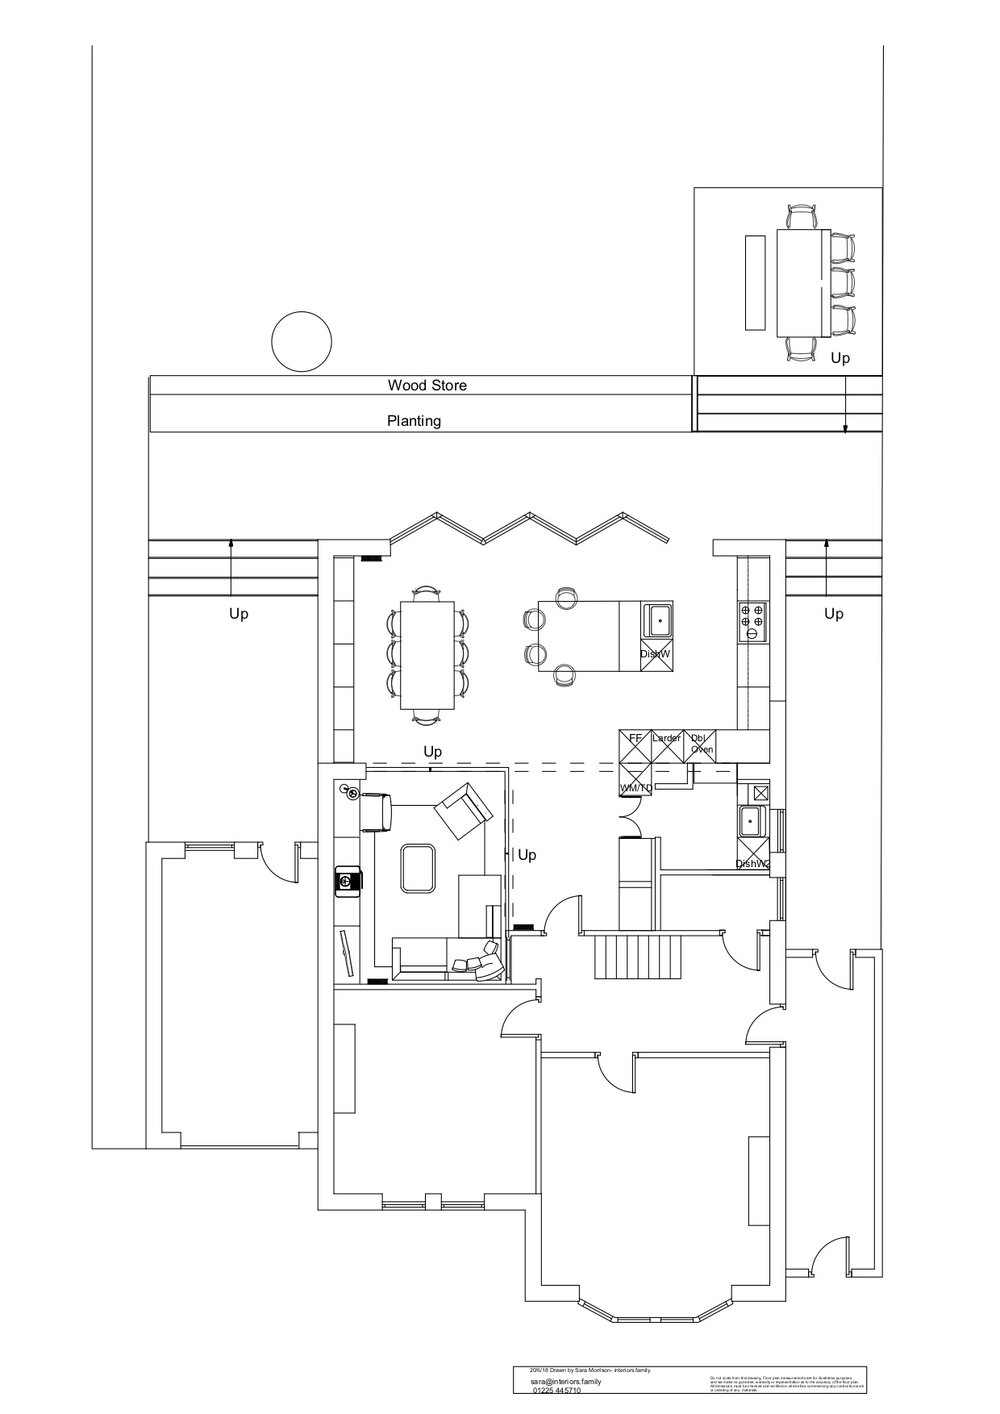 - Sam BartholomewProject Date: June 2018Project Price: £50,000 - £100,000.We were planning a kitchen extension but struggling with the lay-out of the space. We contacted Sara to help and were very happy with the service she provided us with. She came up with great ideas that we would never have thought of whilst keeping in mind the limitations of our budget. Her presentation of the design was professional and inspiring and we look forward to working with her again on the next stage of our project.12 September 2018